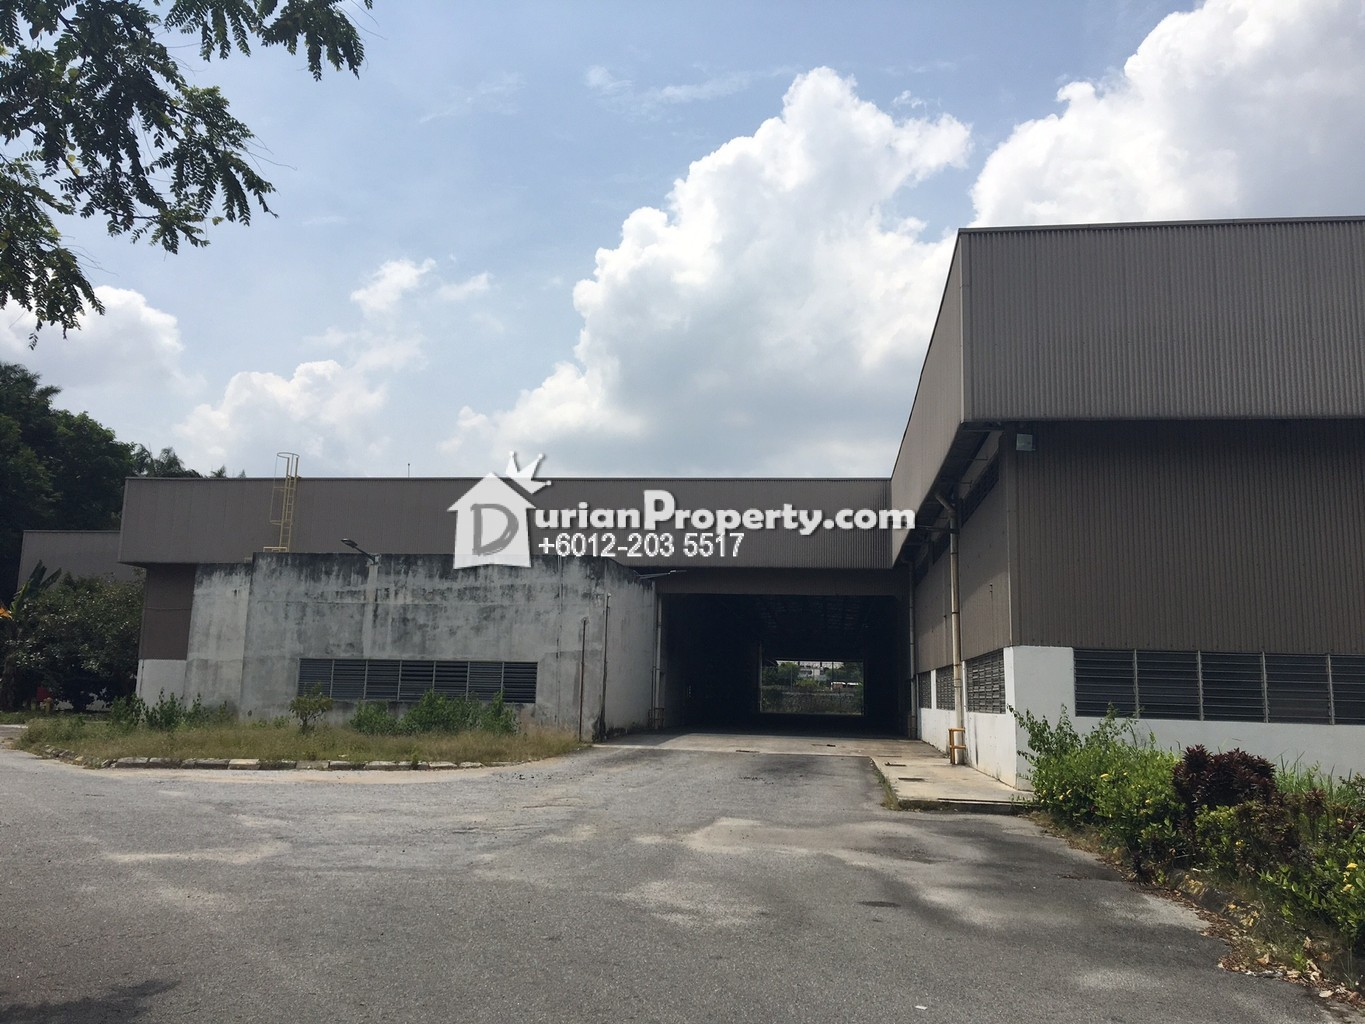 Detached Factory For Rent at Nilai, Negeri Sembilan